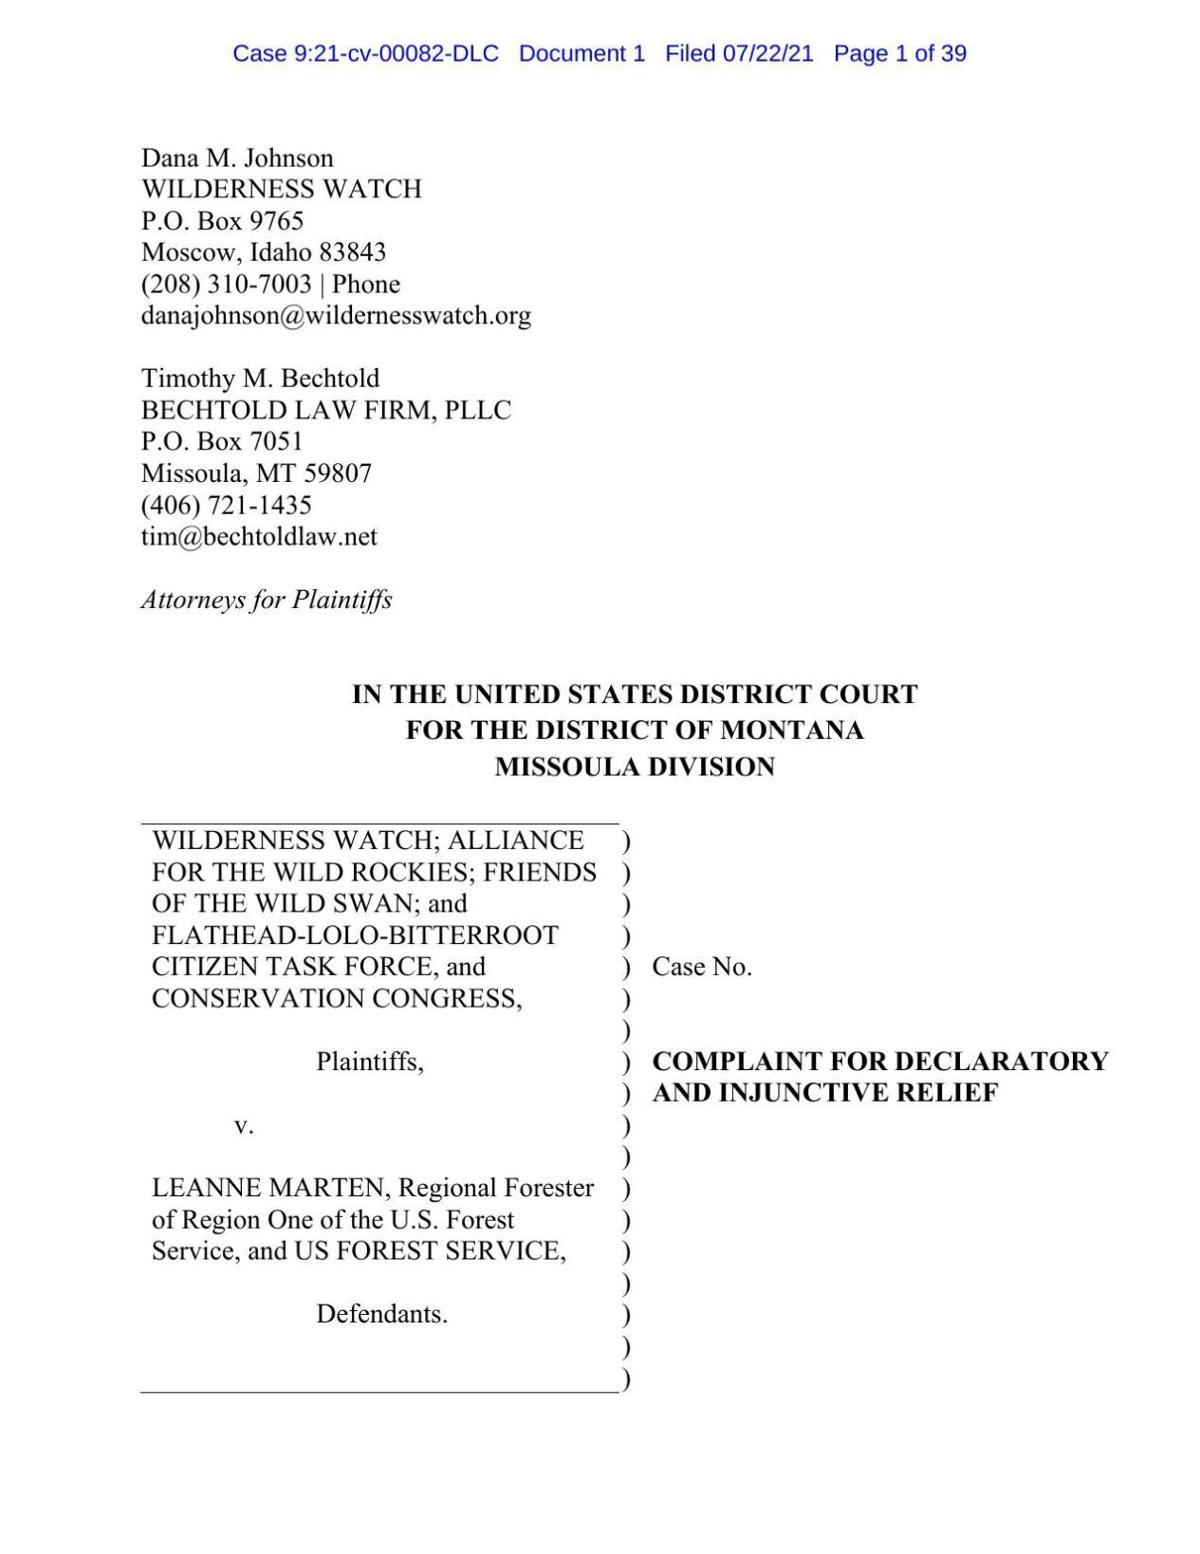 North Fork Blackfoot Preliminary Injunction Request